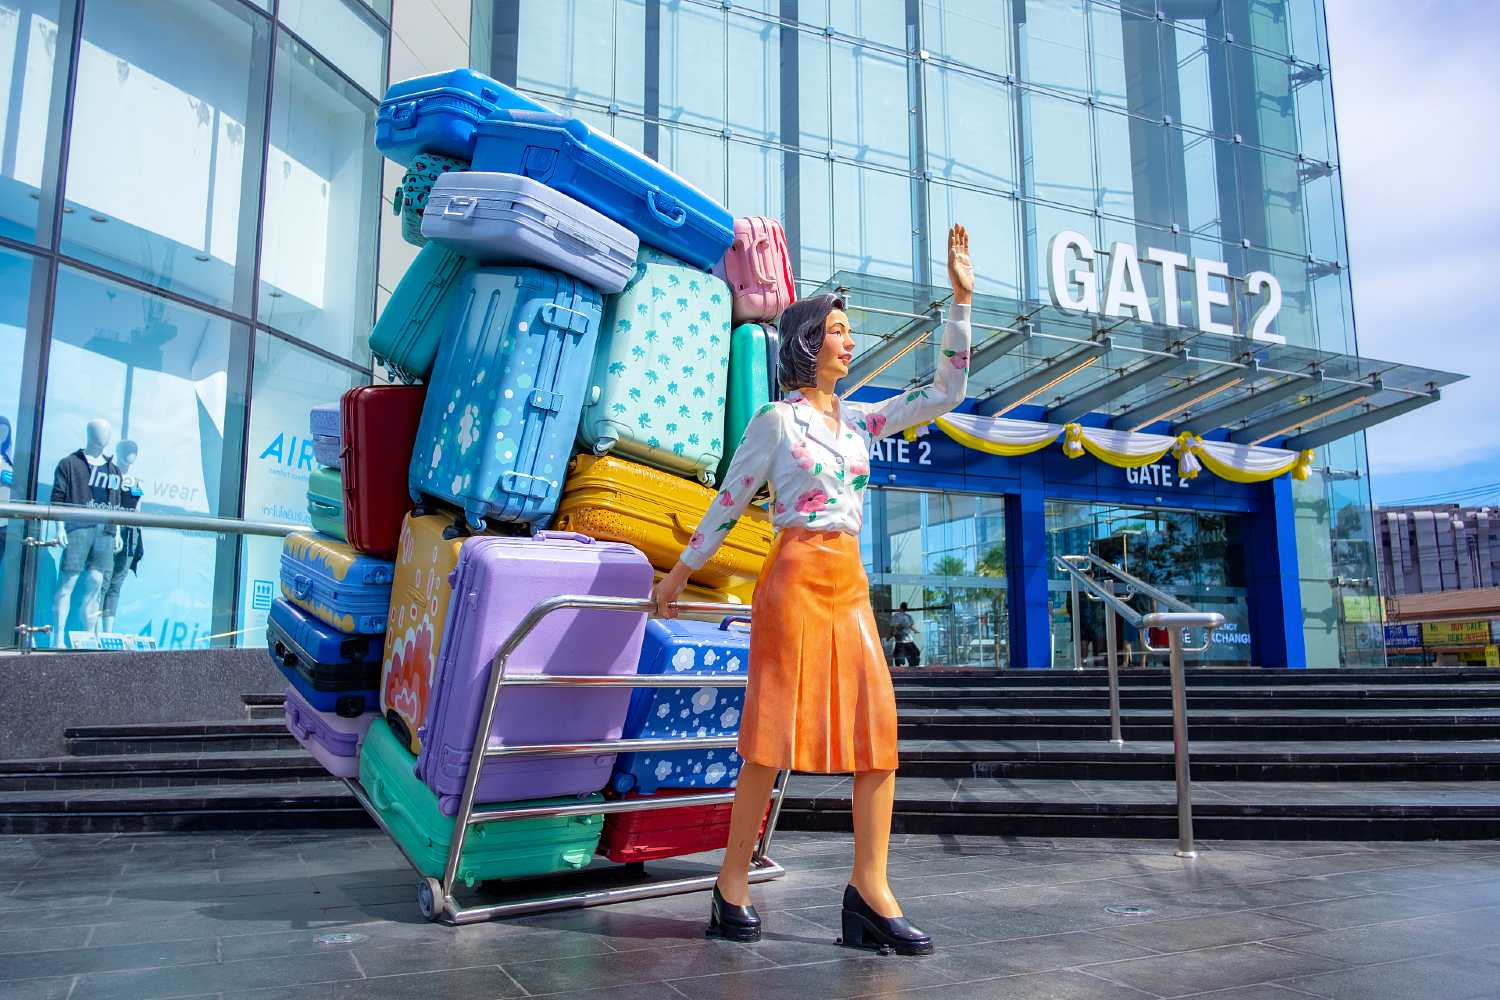 Image of woman with cart loaded with suitcases in front of mall